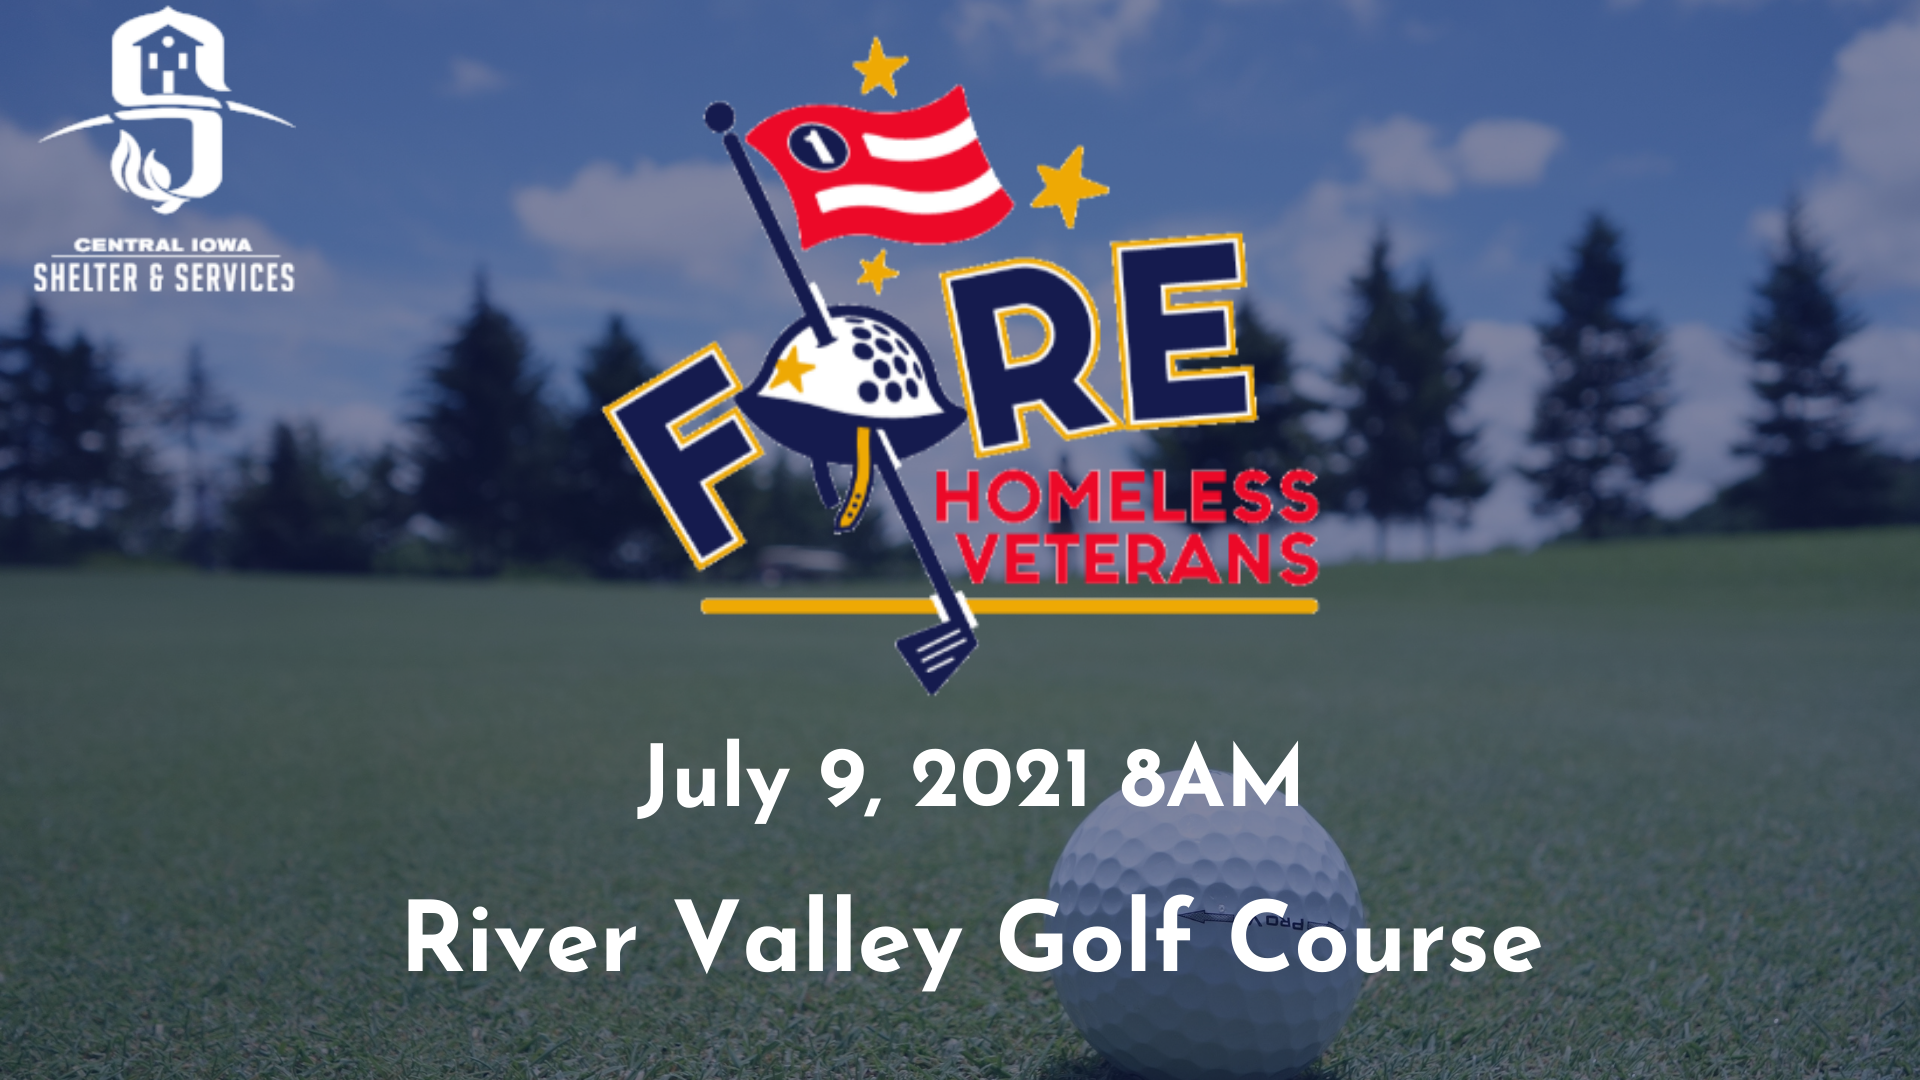 Fore! Homeless Veterans Golf Outing